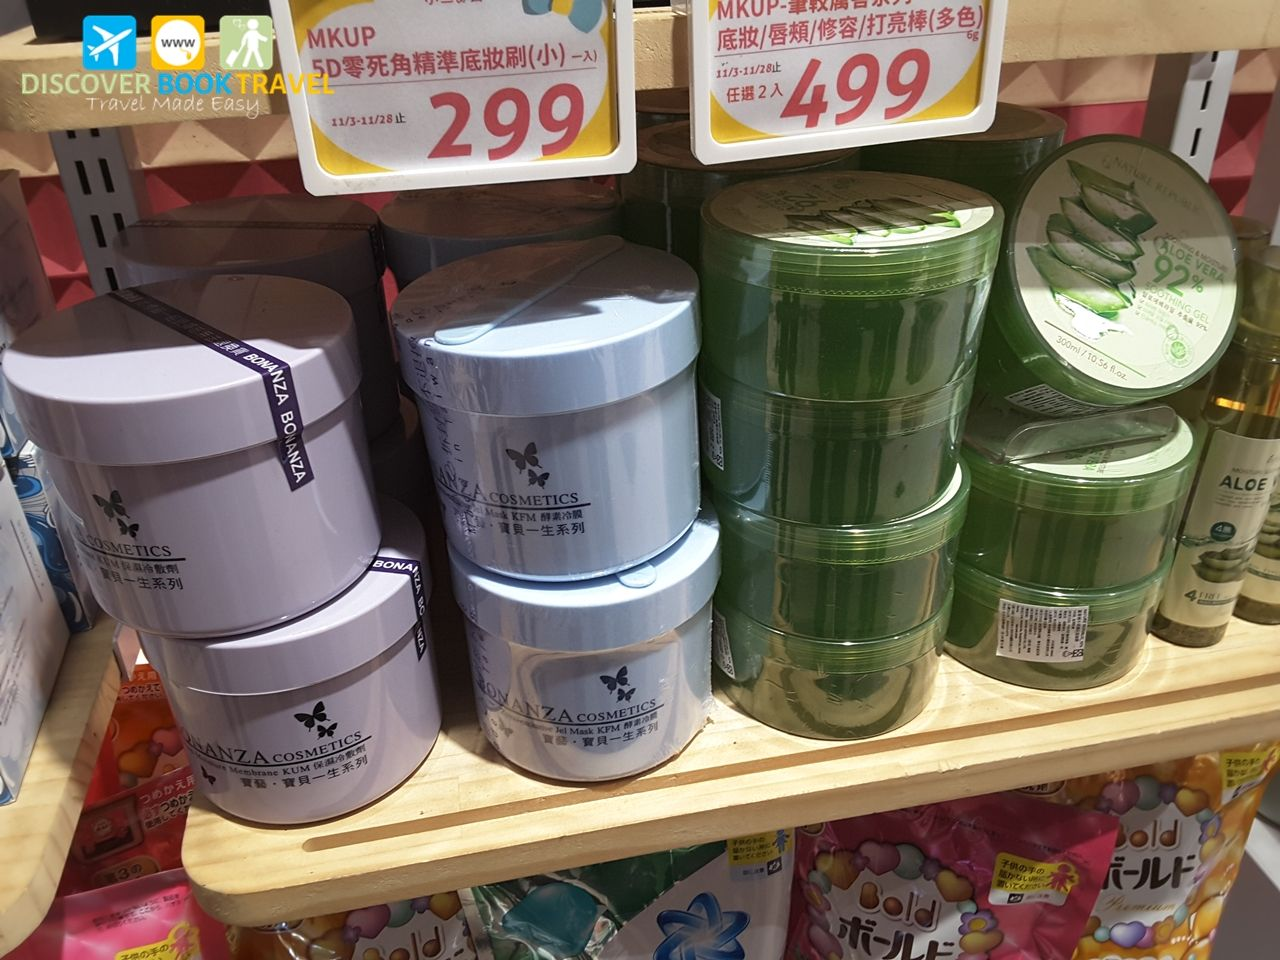 Top 10 Skincare Products To Buy In Taiwan Updated 2019 Discover Book Travel Singapore Travel Blog Singapore Travel Travel Book Popular Skin Care Products